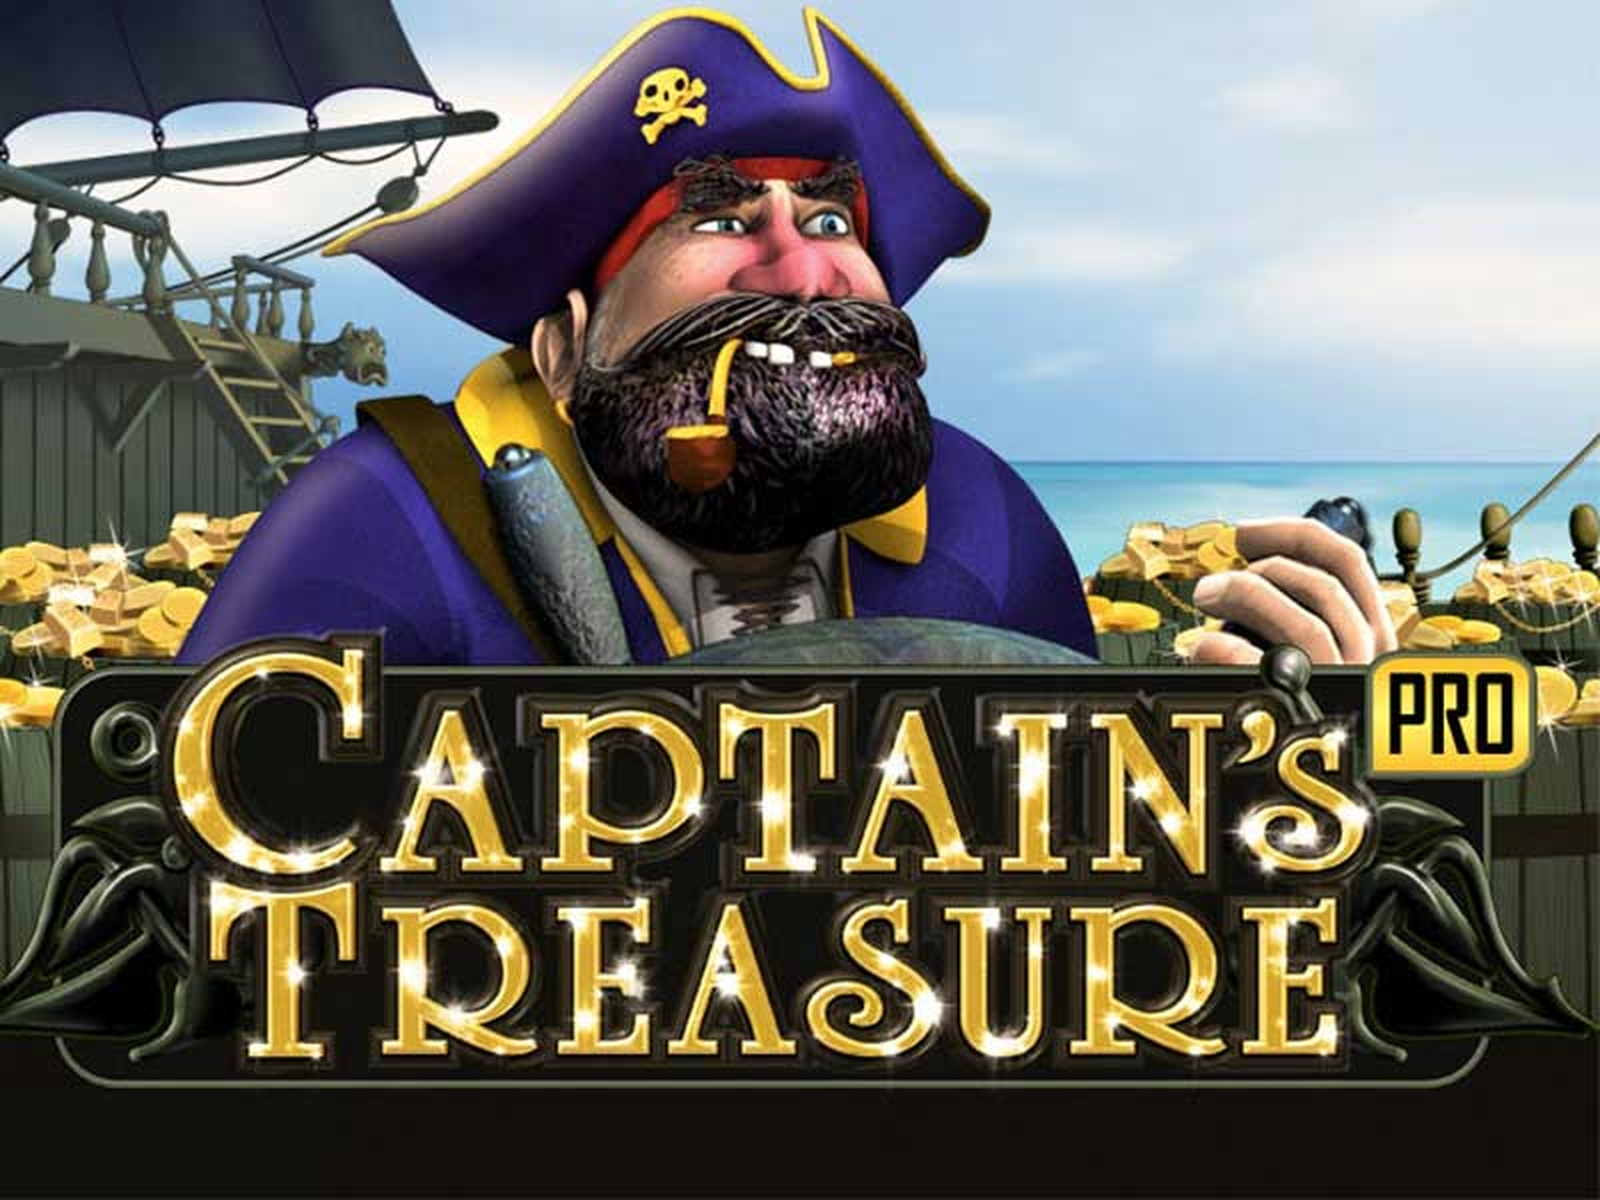 The Captain's Treasure Pro Online Slot Demo Game by Playtech